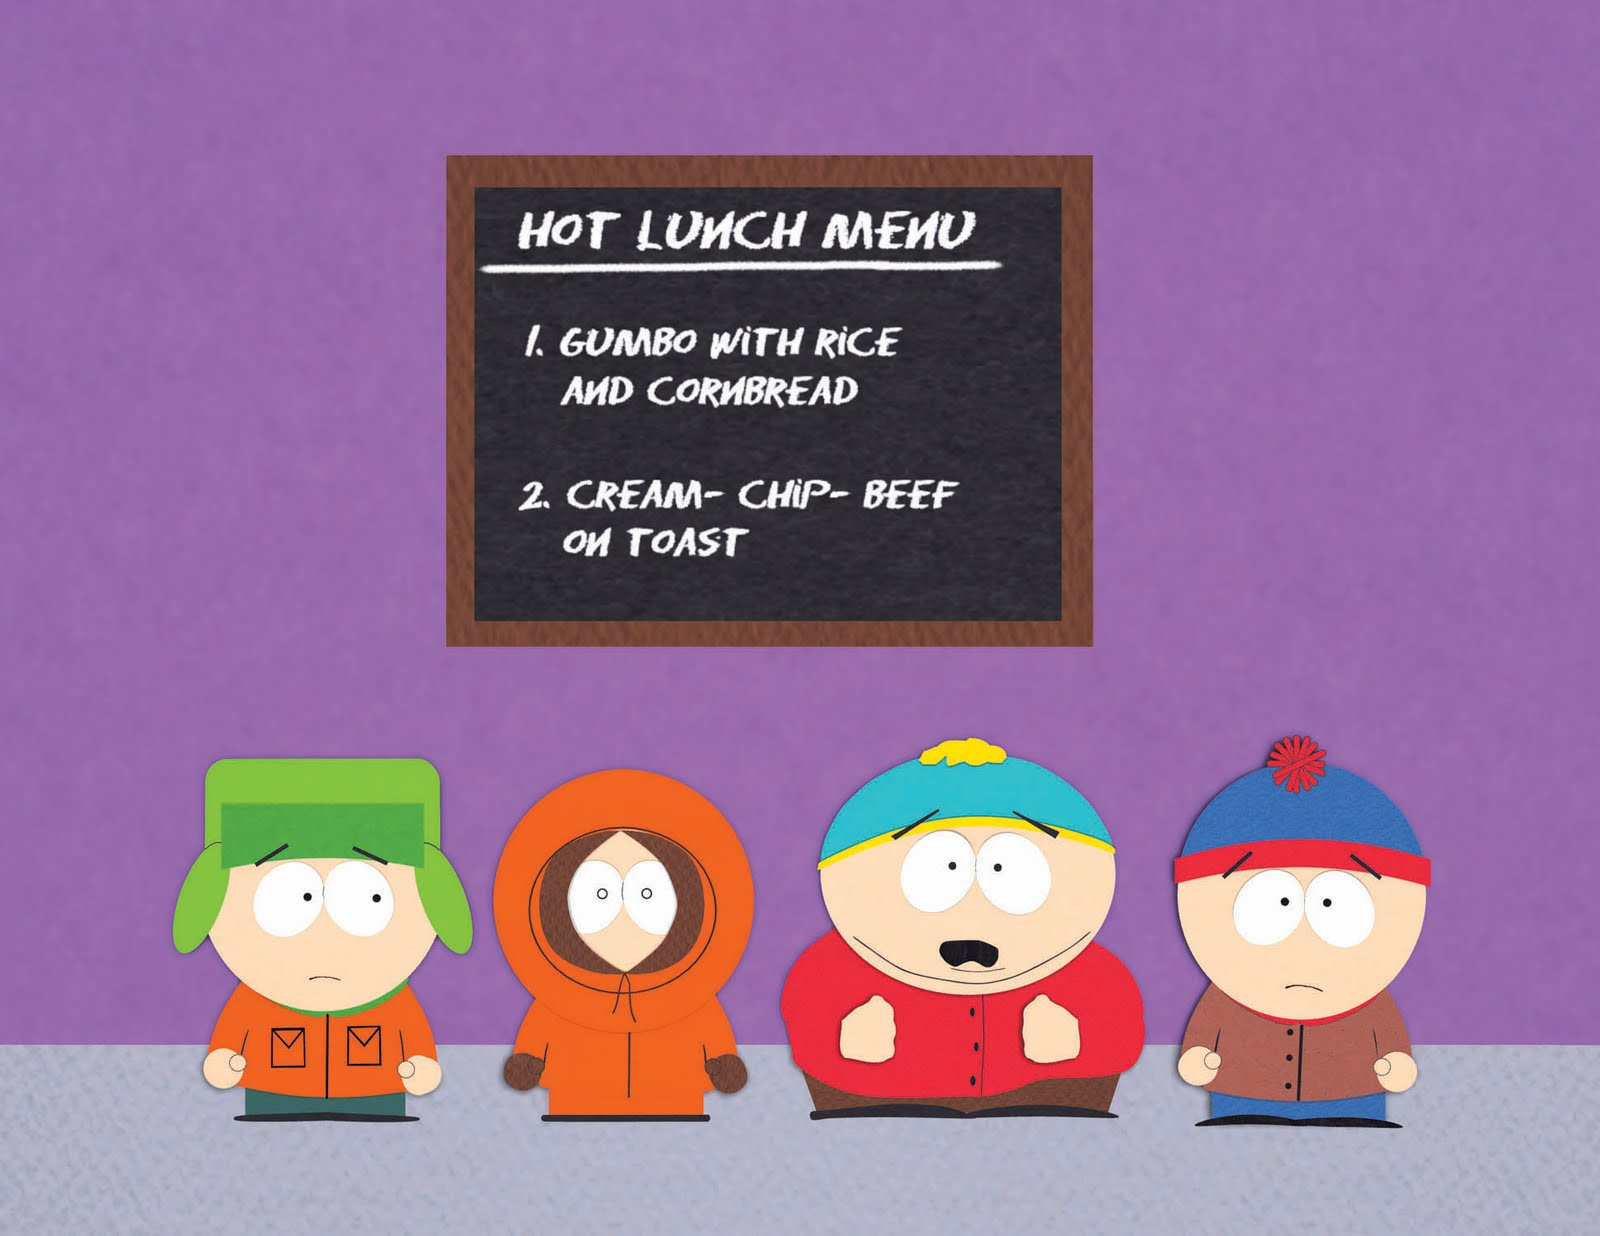 South Park Funny HD WallpapersHigh Resolution Backgrounds 1600x1236